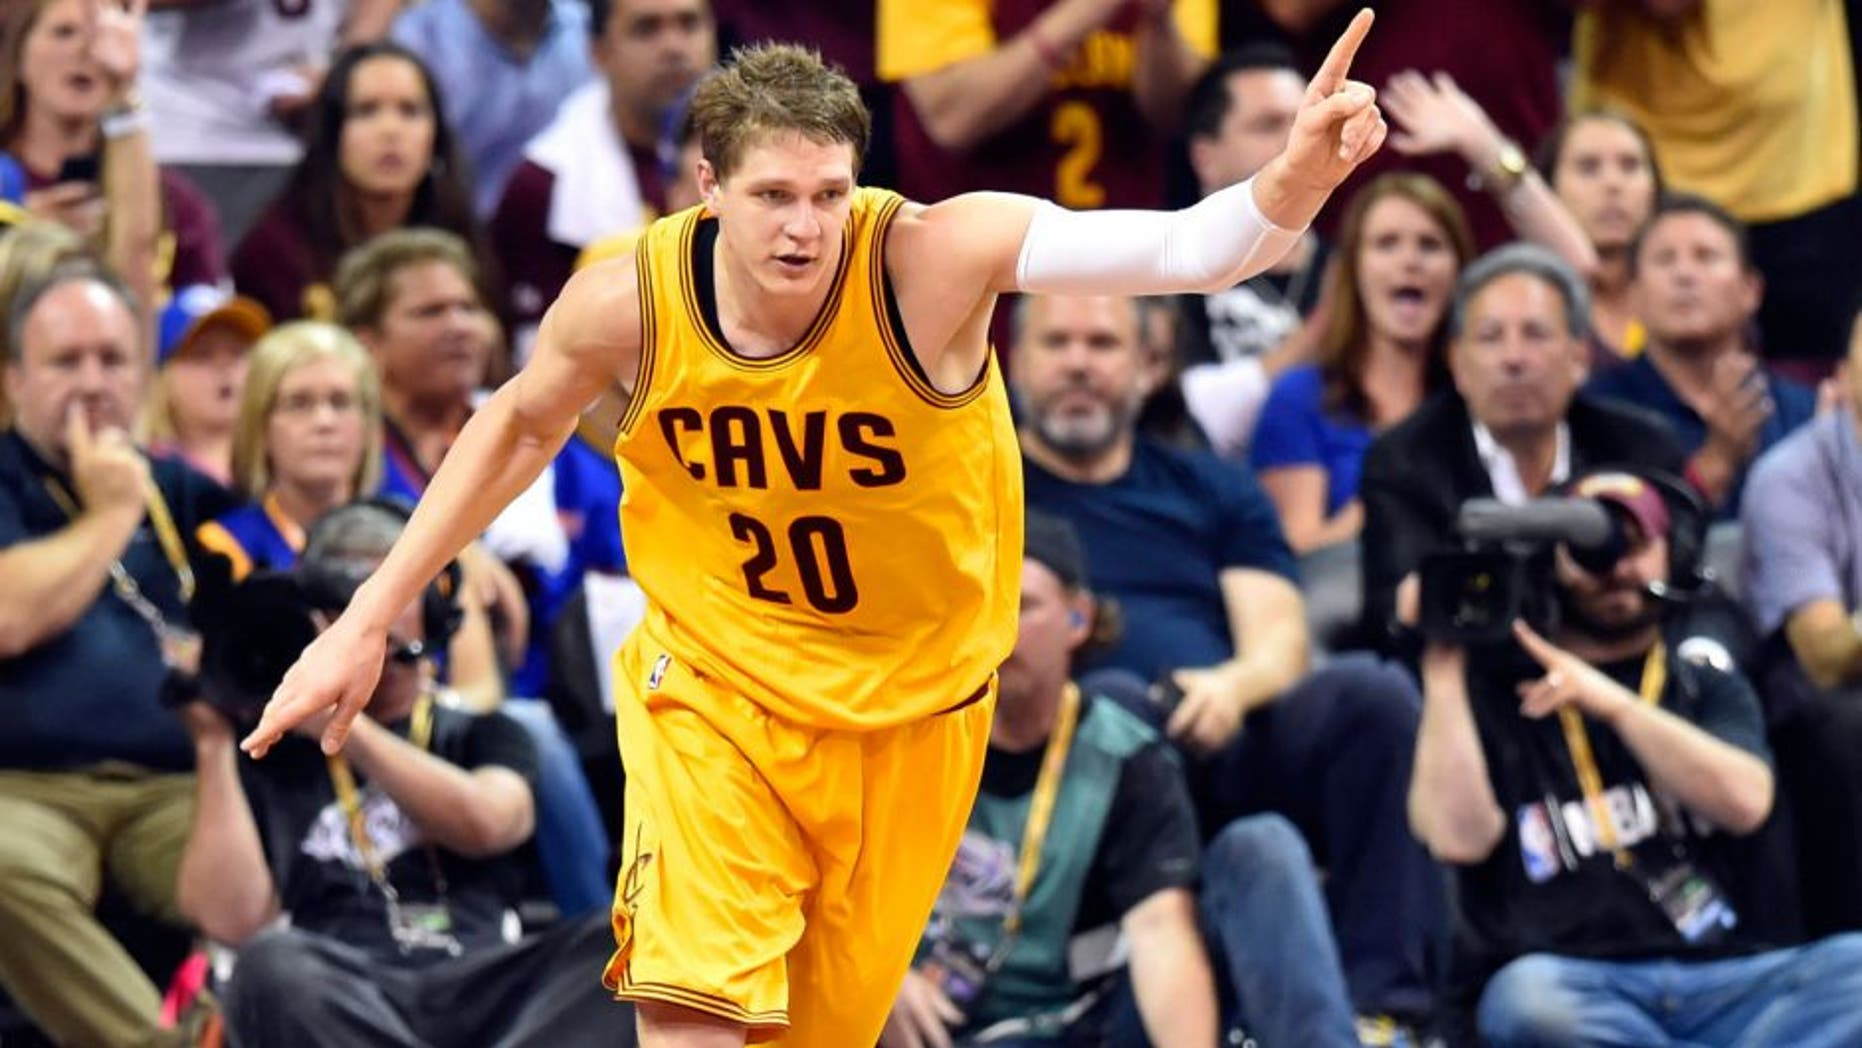 Jun 11, 2015; Cleveland, OH, USA; Cleveland Cavaliers center Timofey Mozgov (20) reacts during the third quarter of game four of the NBA Finals against the Golden State Warriors at Quicken Loans Arena.